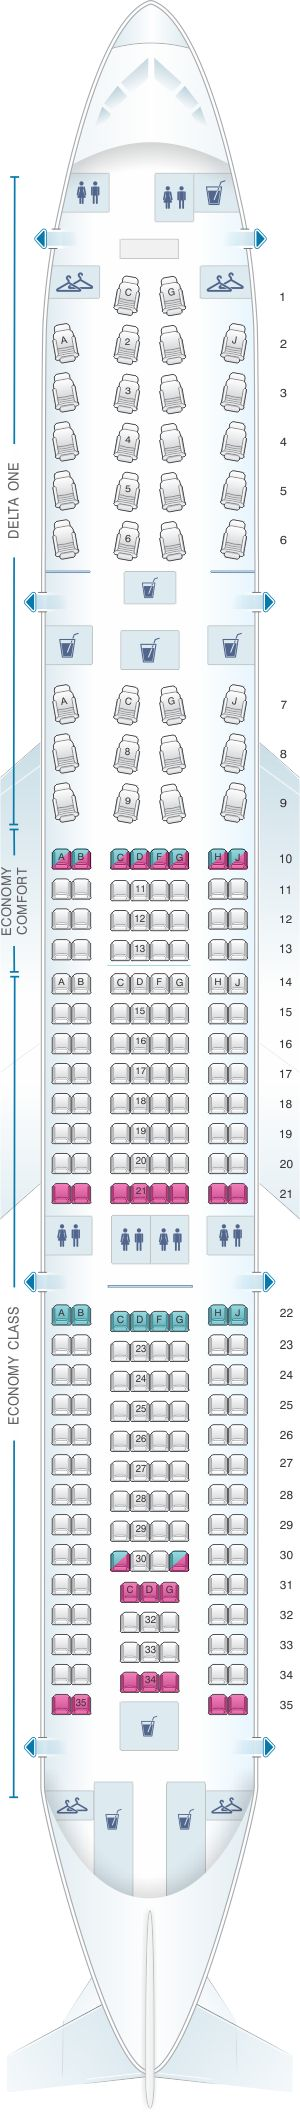 Seat Map Airbus A330 200 (332)